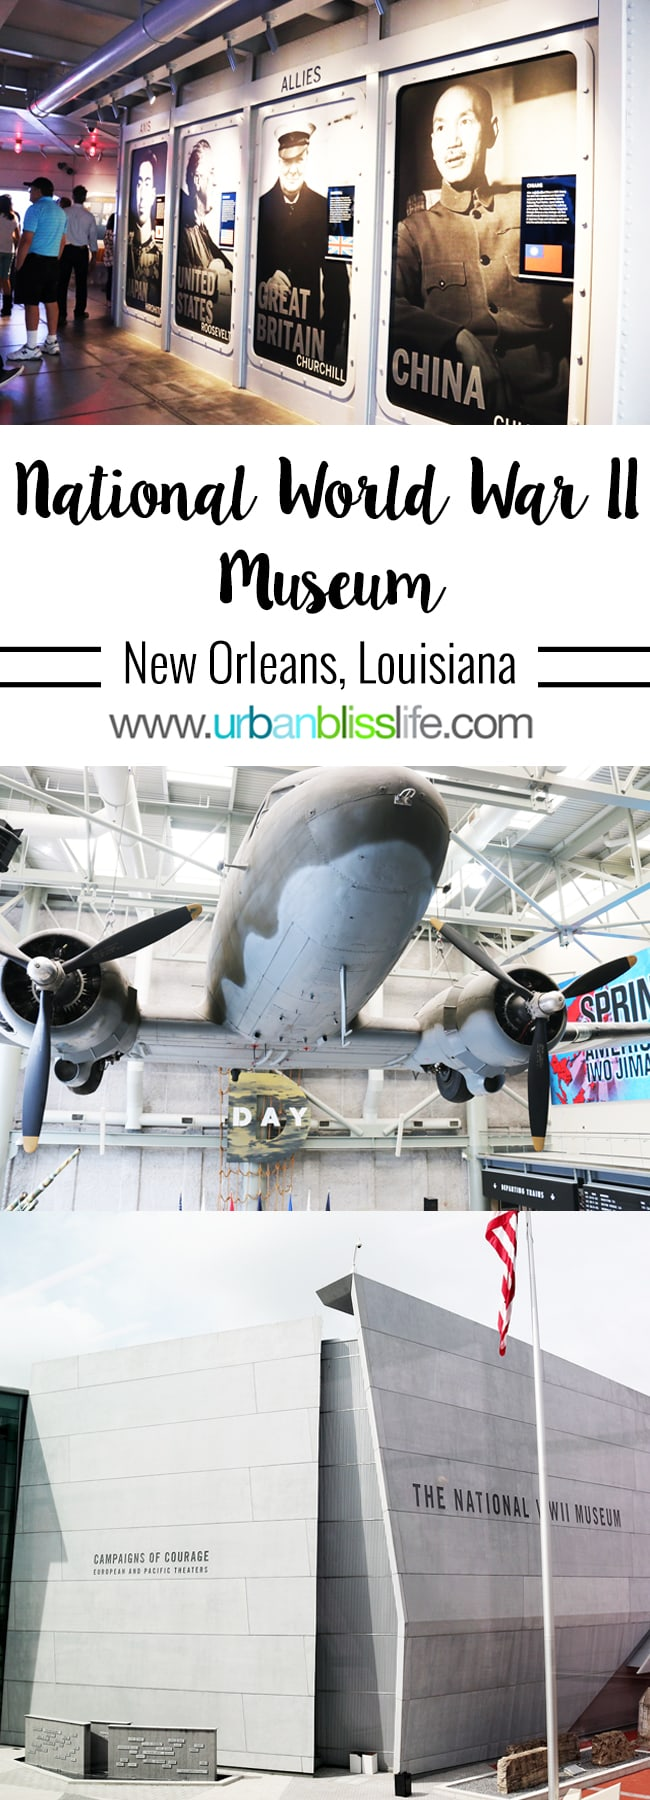 WW2 Museum New Orleans, Louisiana review on UrbanBlissLife.com.